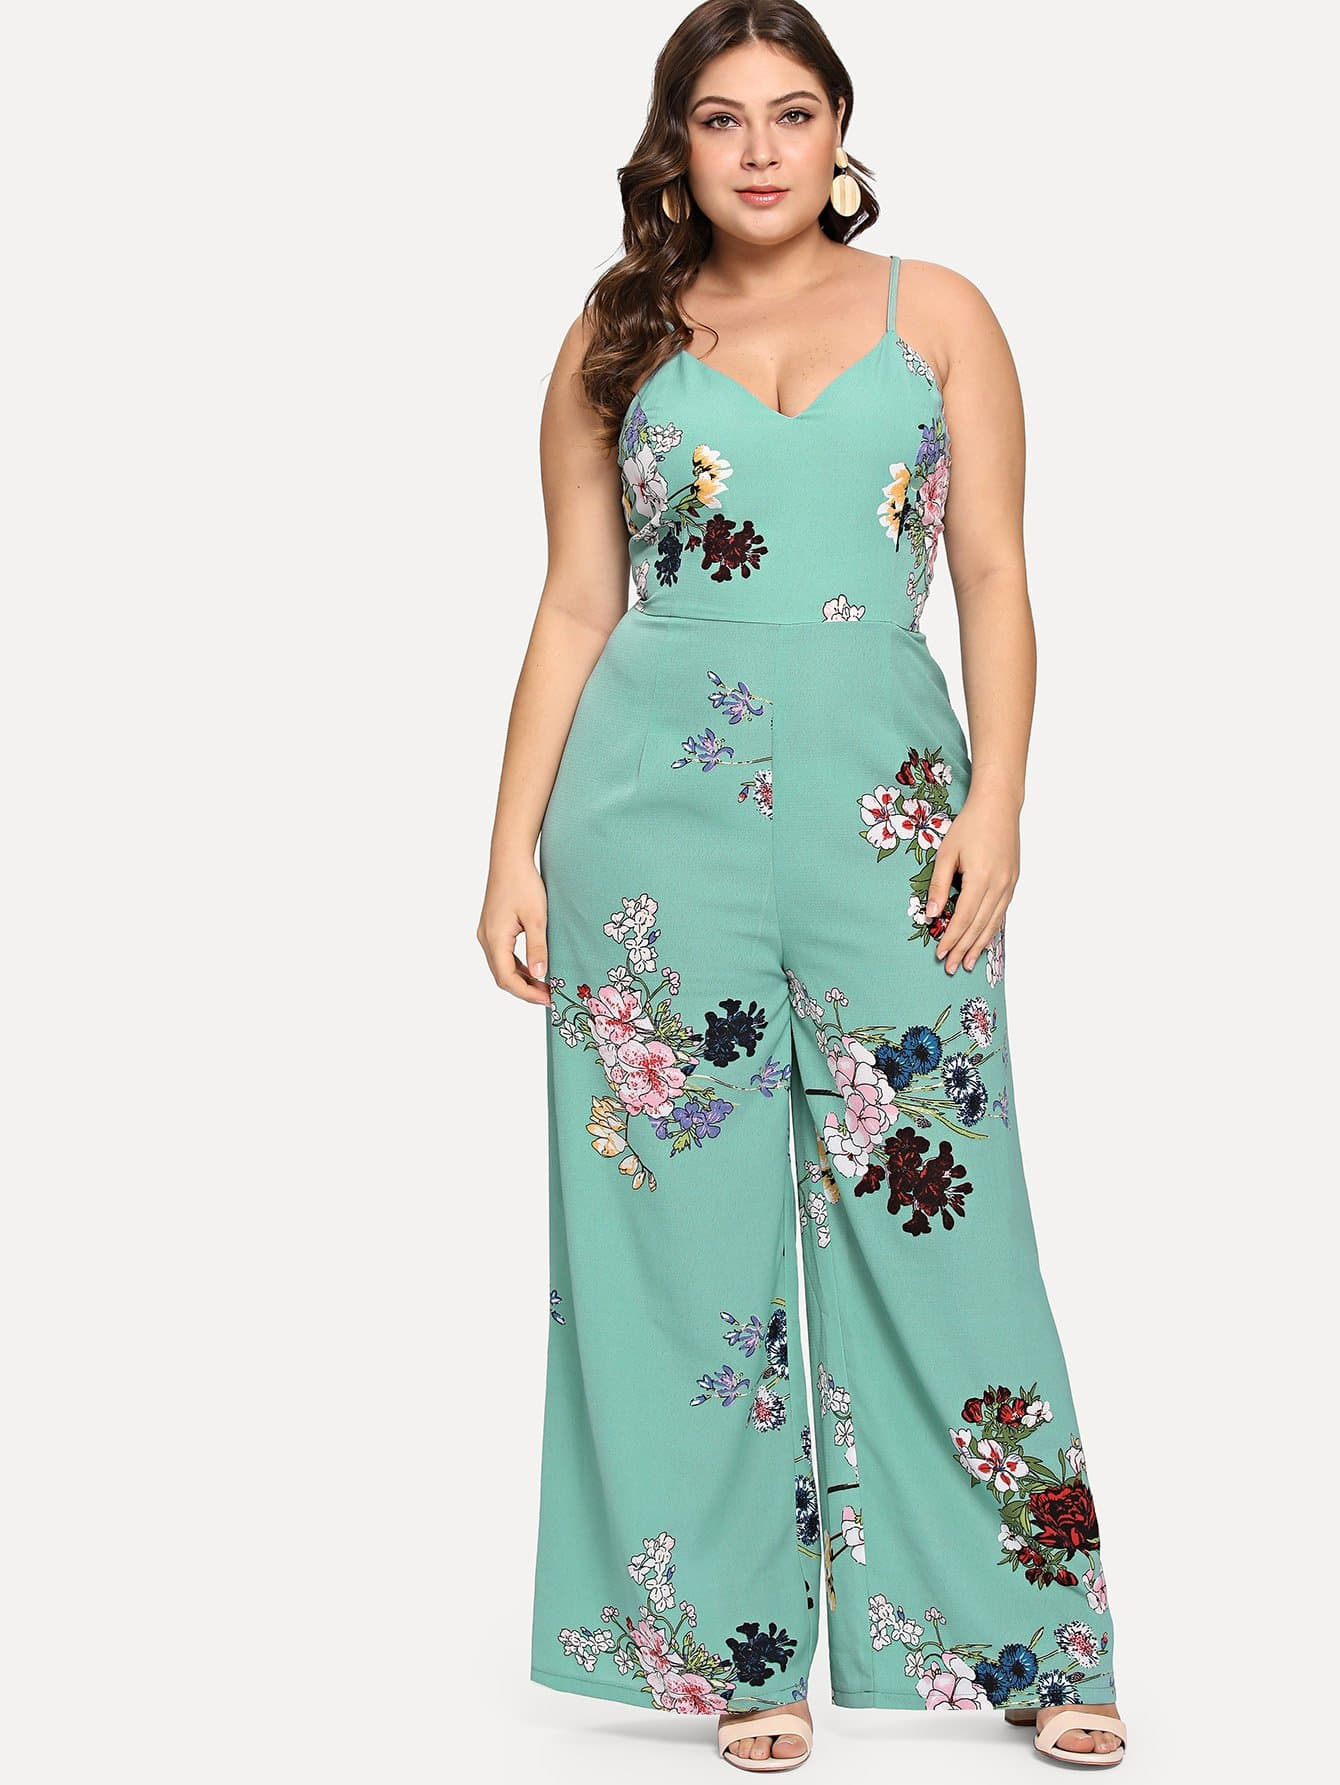 Plus Crisscross Back Floral Cami Jumpsuit hettich 1804 12